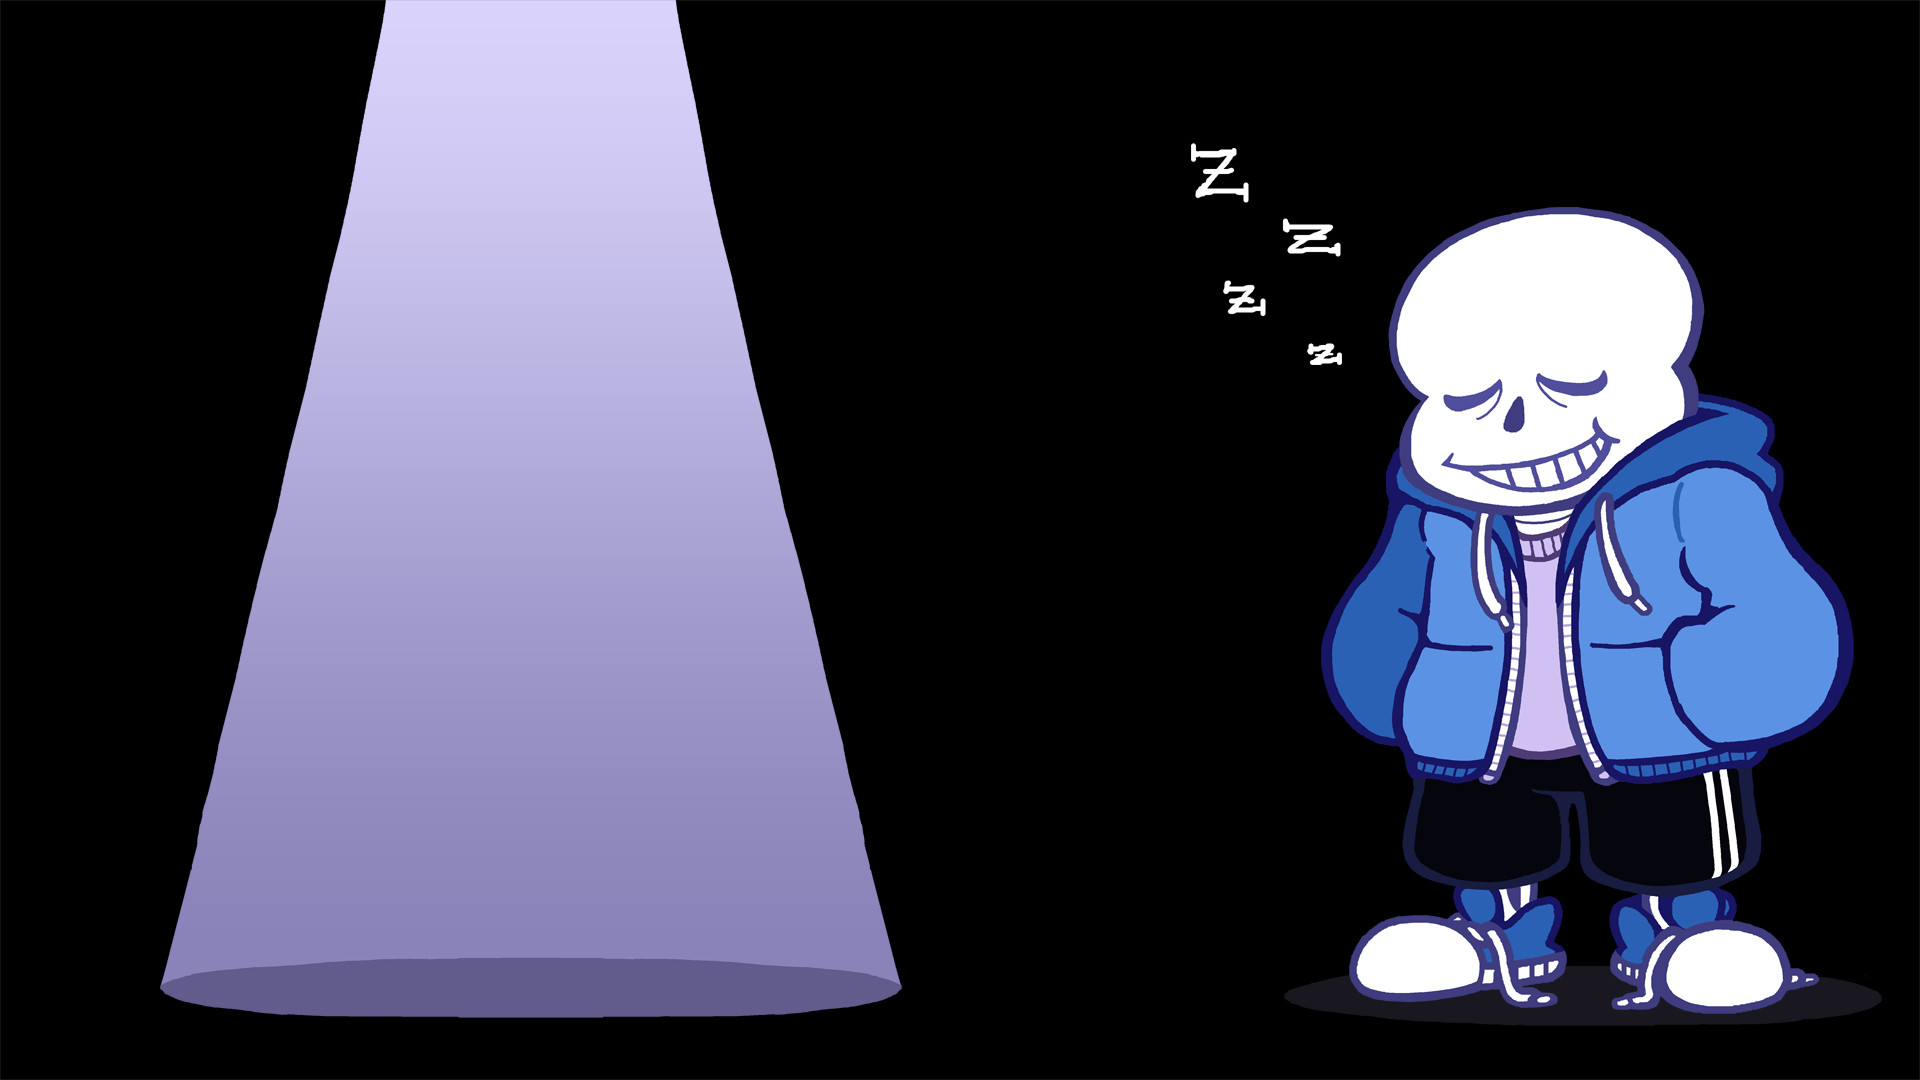 UNDERTALE-The Game images Sans Wallpaper HD wallpaper and background photos